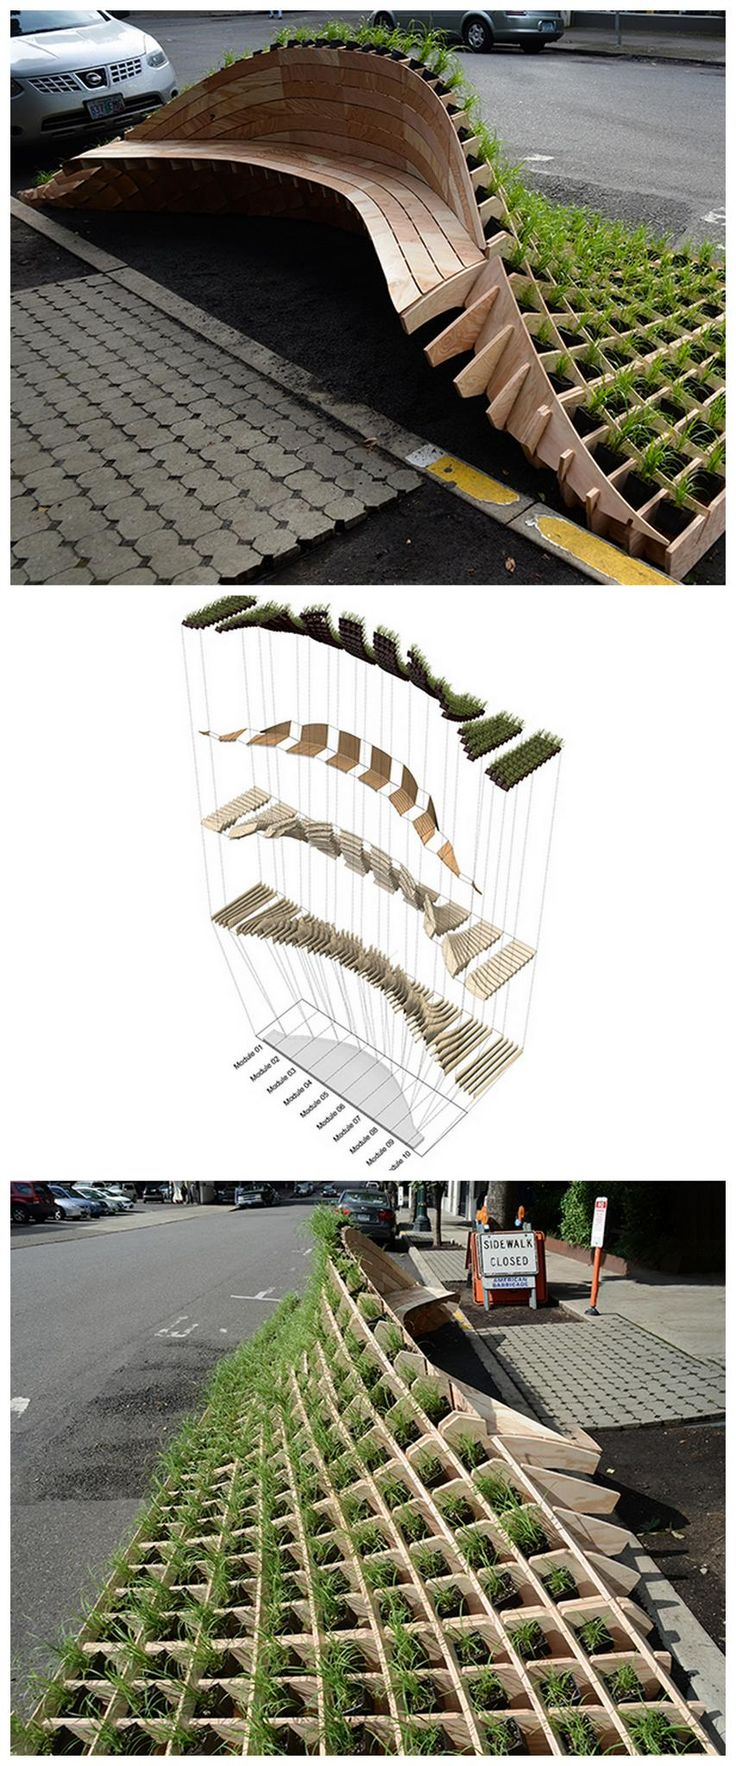 LIFT modular, re-deployable seating. Click image for link to full profile and visit the slowottawa.ca boards >> https://www.pinterest.com/slowottawa/